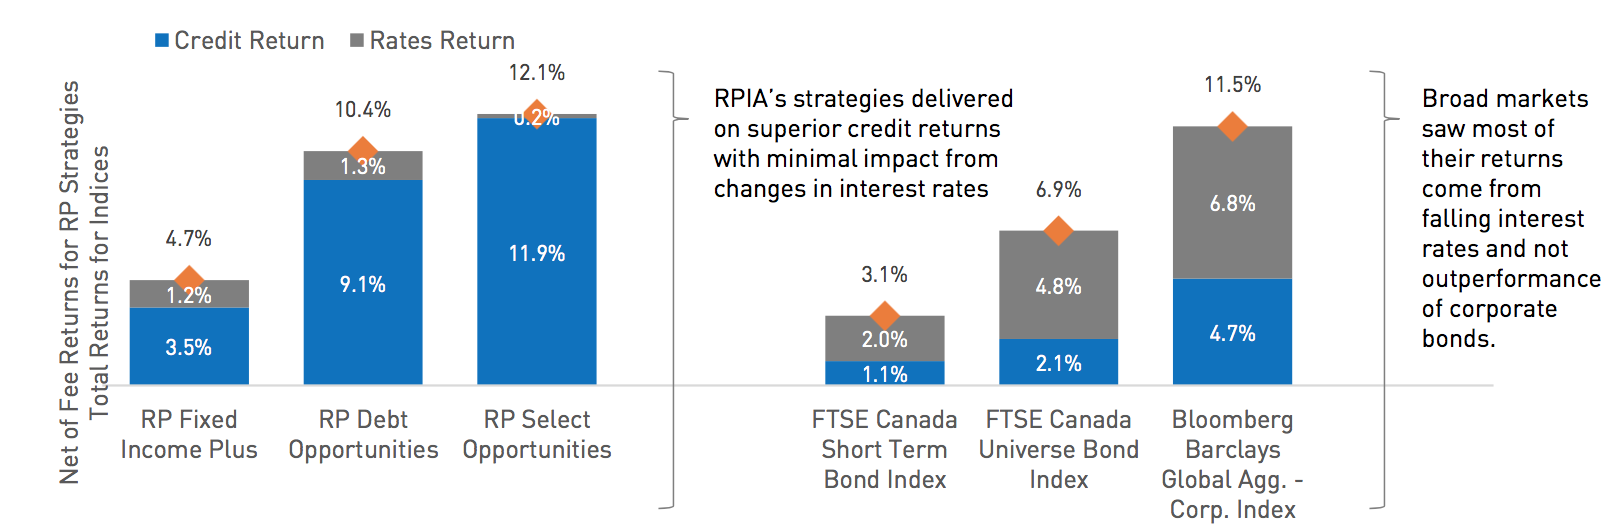 PIA Strategies Return Profile Focused on Our Areas of Expertise – Corporate Bond Investing